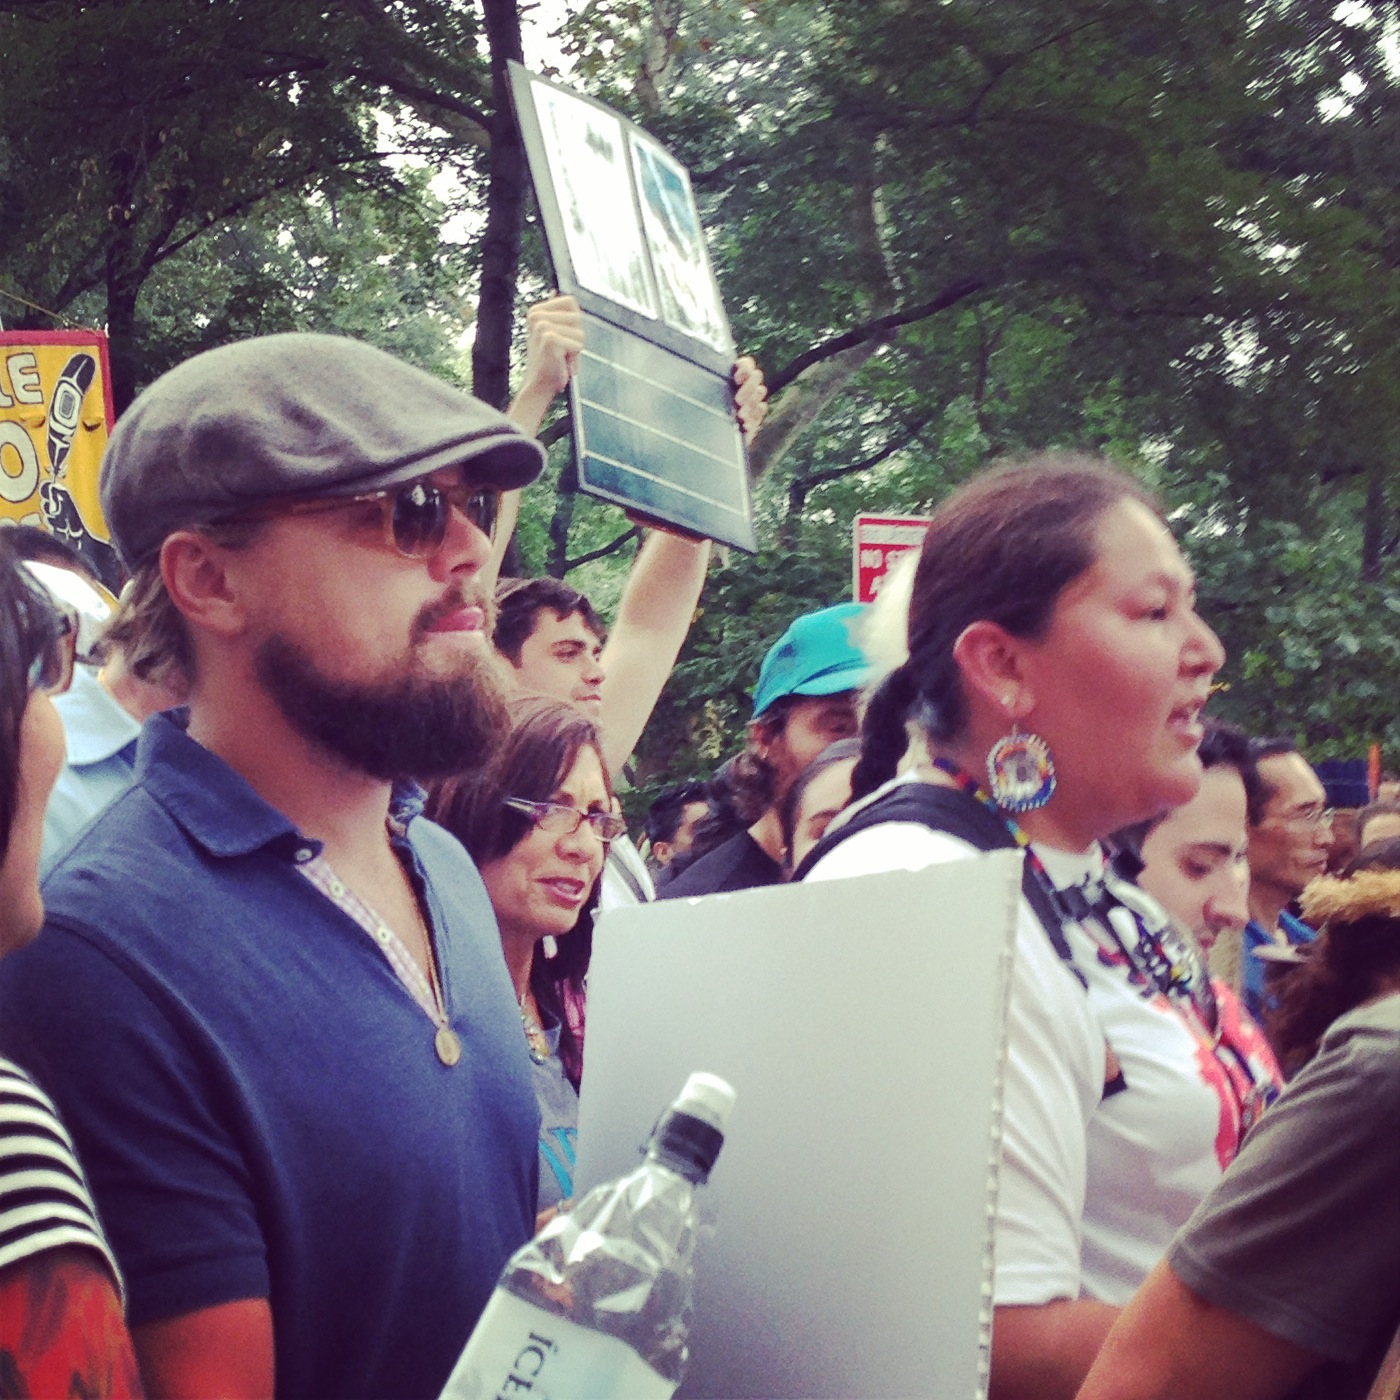 Fellow marcher at People's Climate March in New York City, Leonardo DiCaprio.